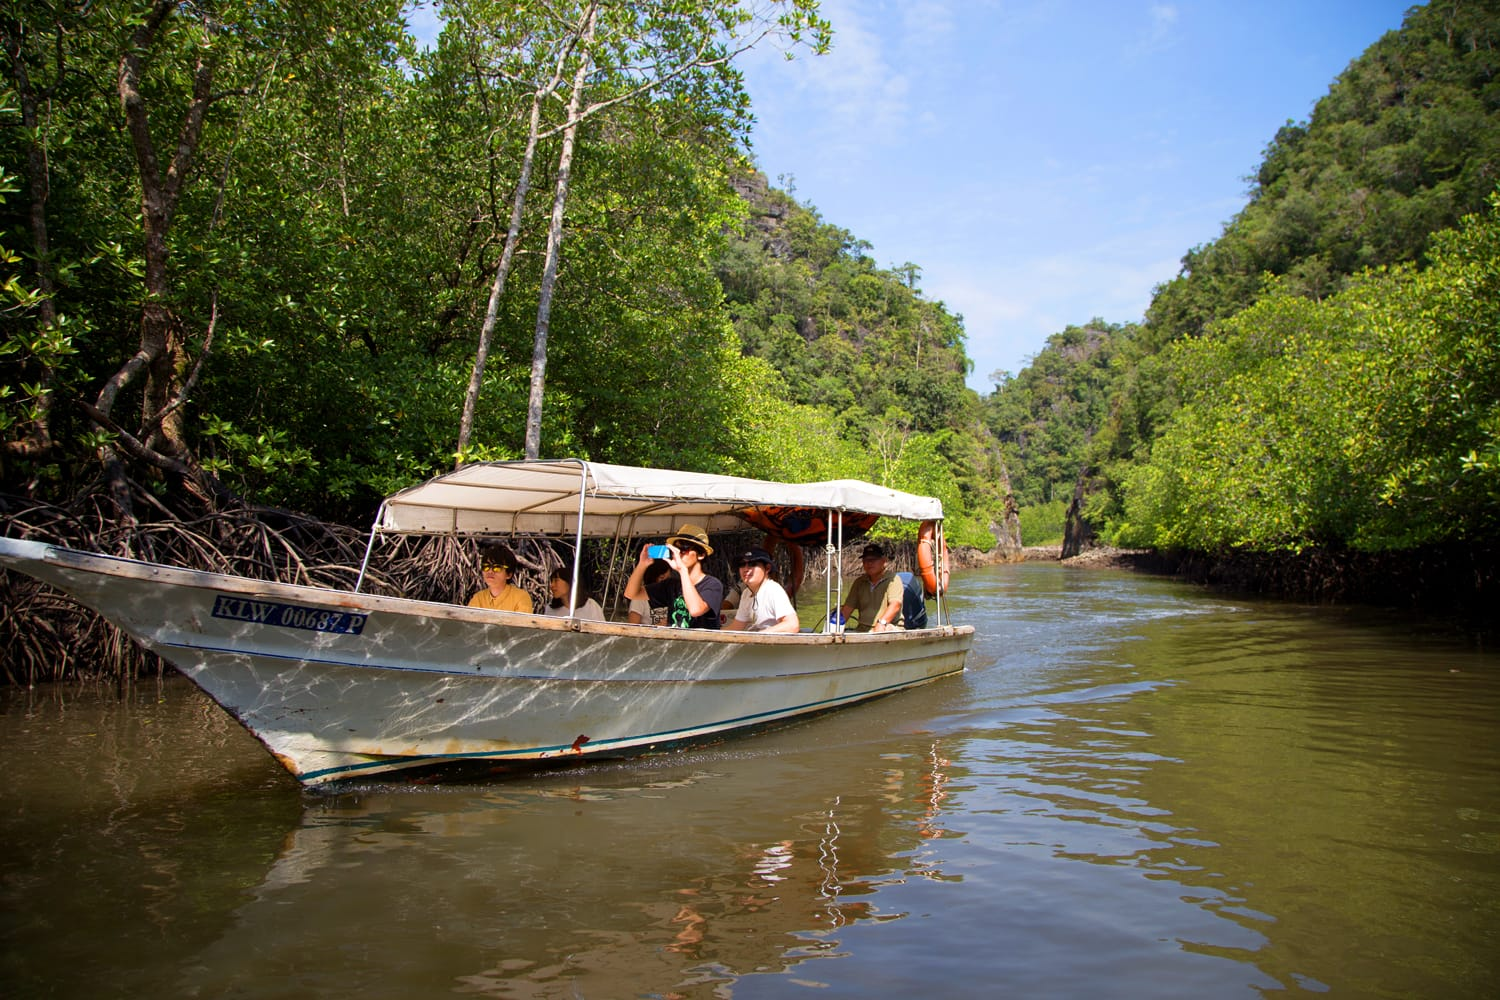 Tourists travel by boat at Kilim Karst Geoforest park in Langkawi, Malaysia